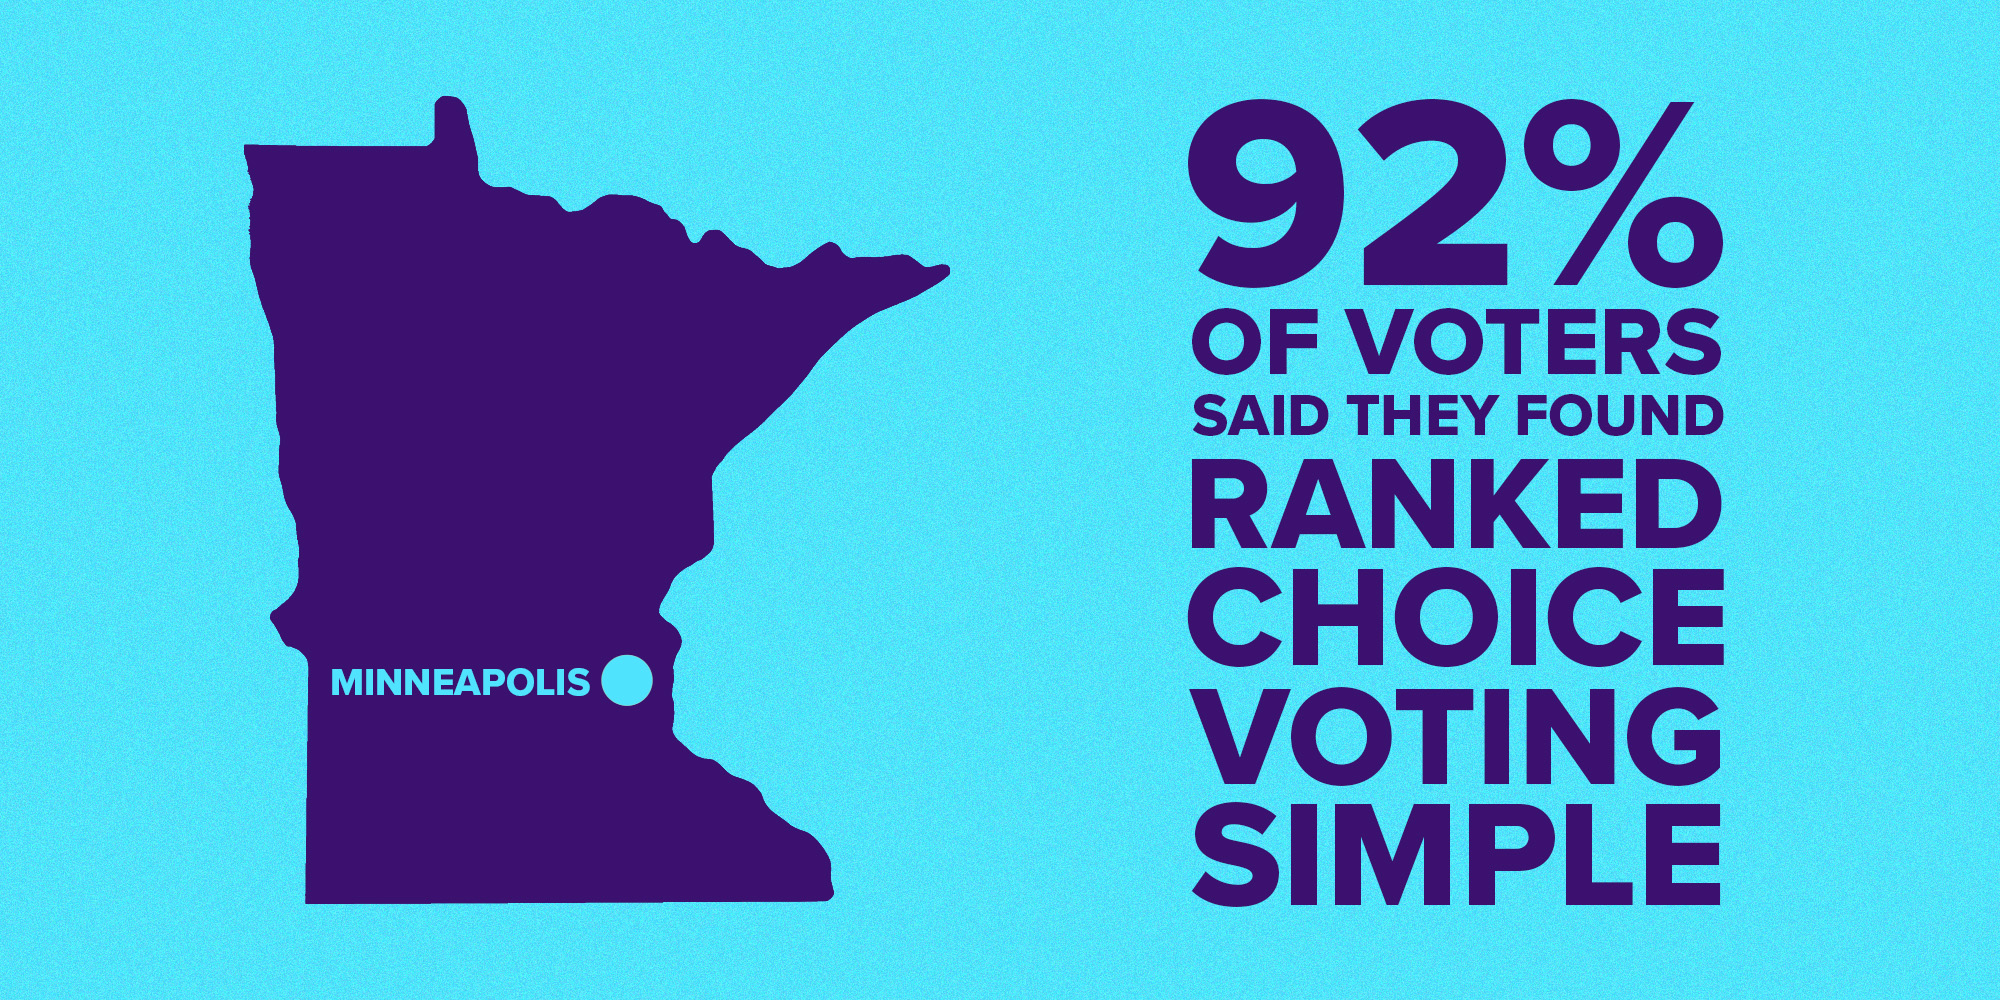 Minneapolis voters give ranked choice voting high marks after third RCV election